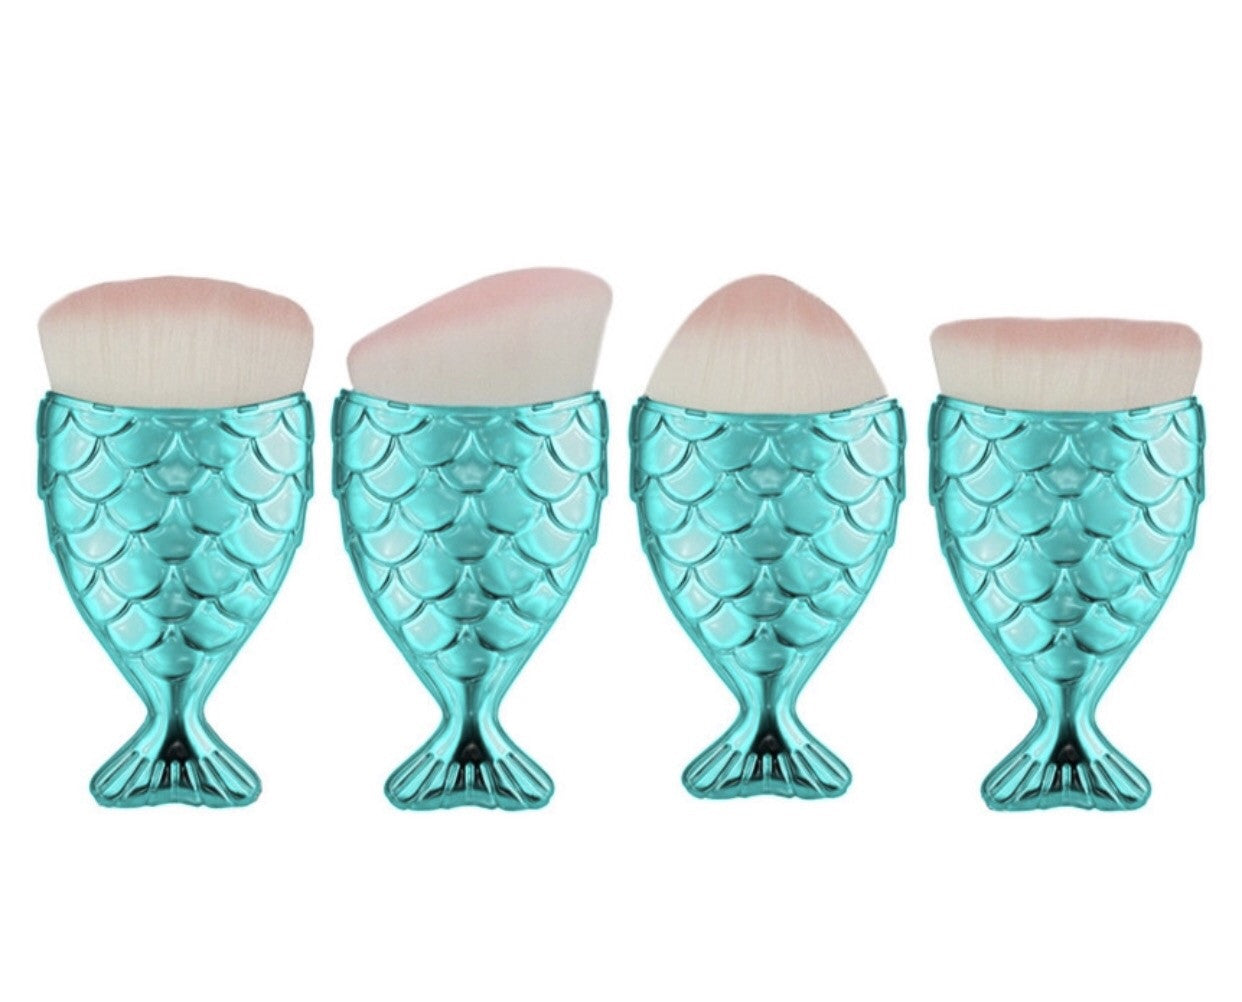 Teal mermaid tail brushes set of 4